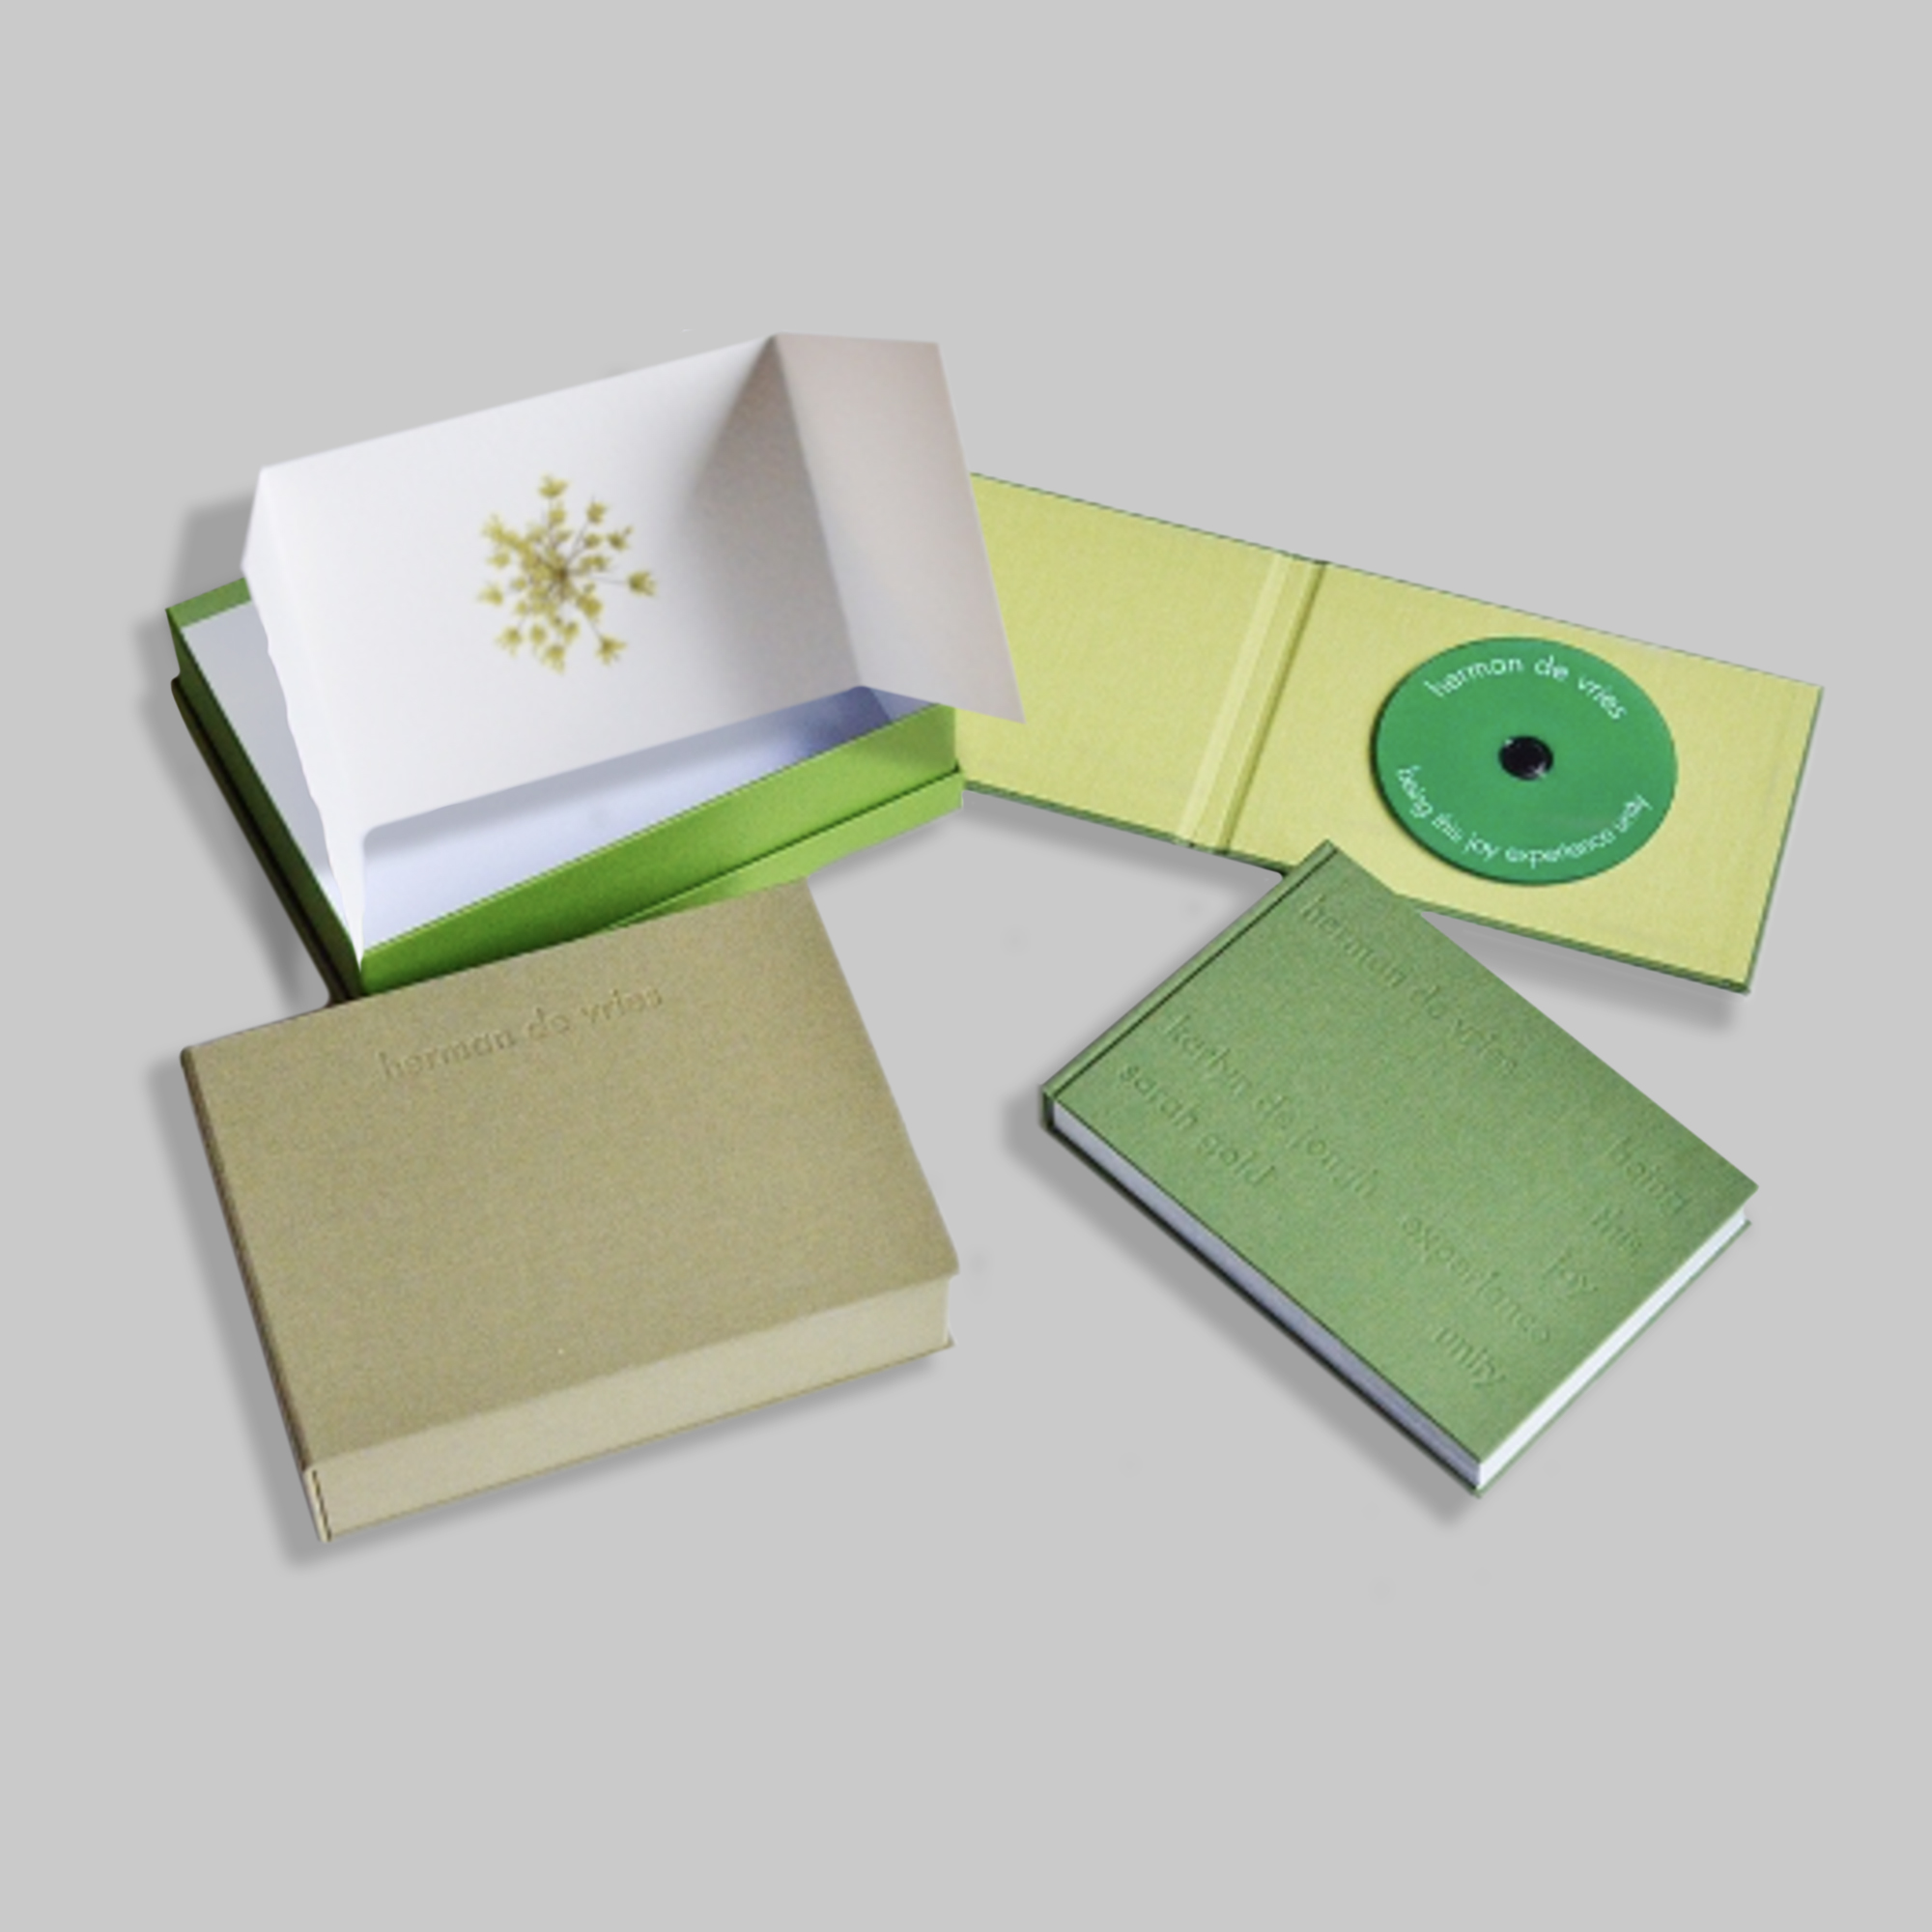 herman-de-vries-being-this-joy-experience-unity-deluxe-edition-of-50-copies-signed-by-herman-de-vrie